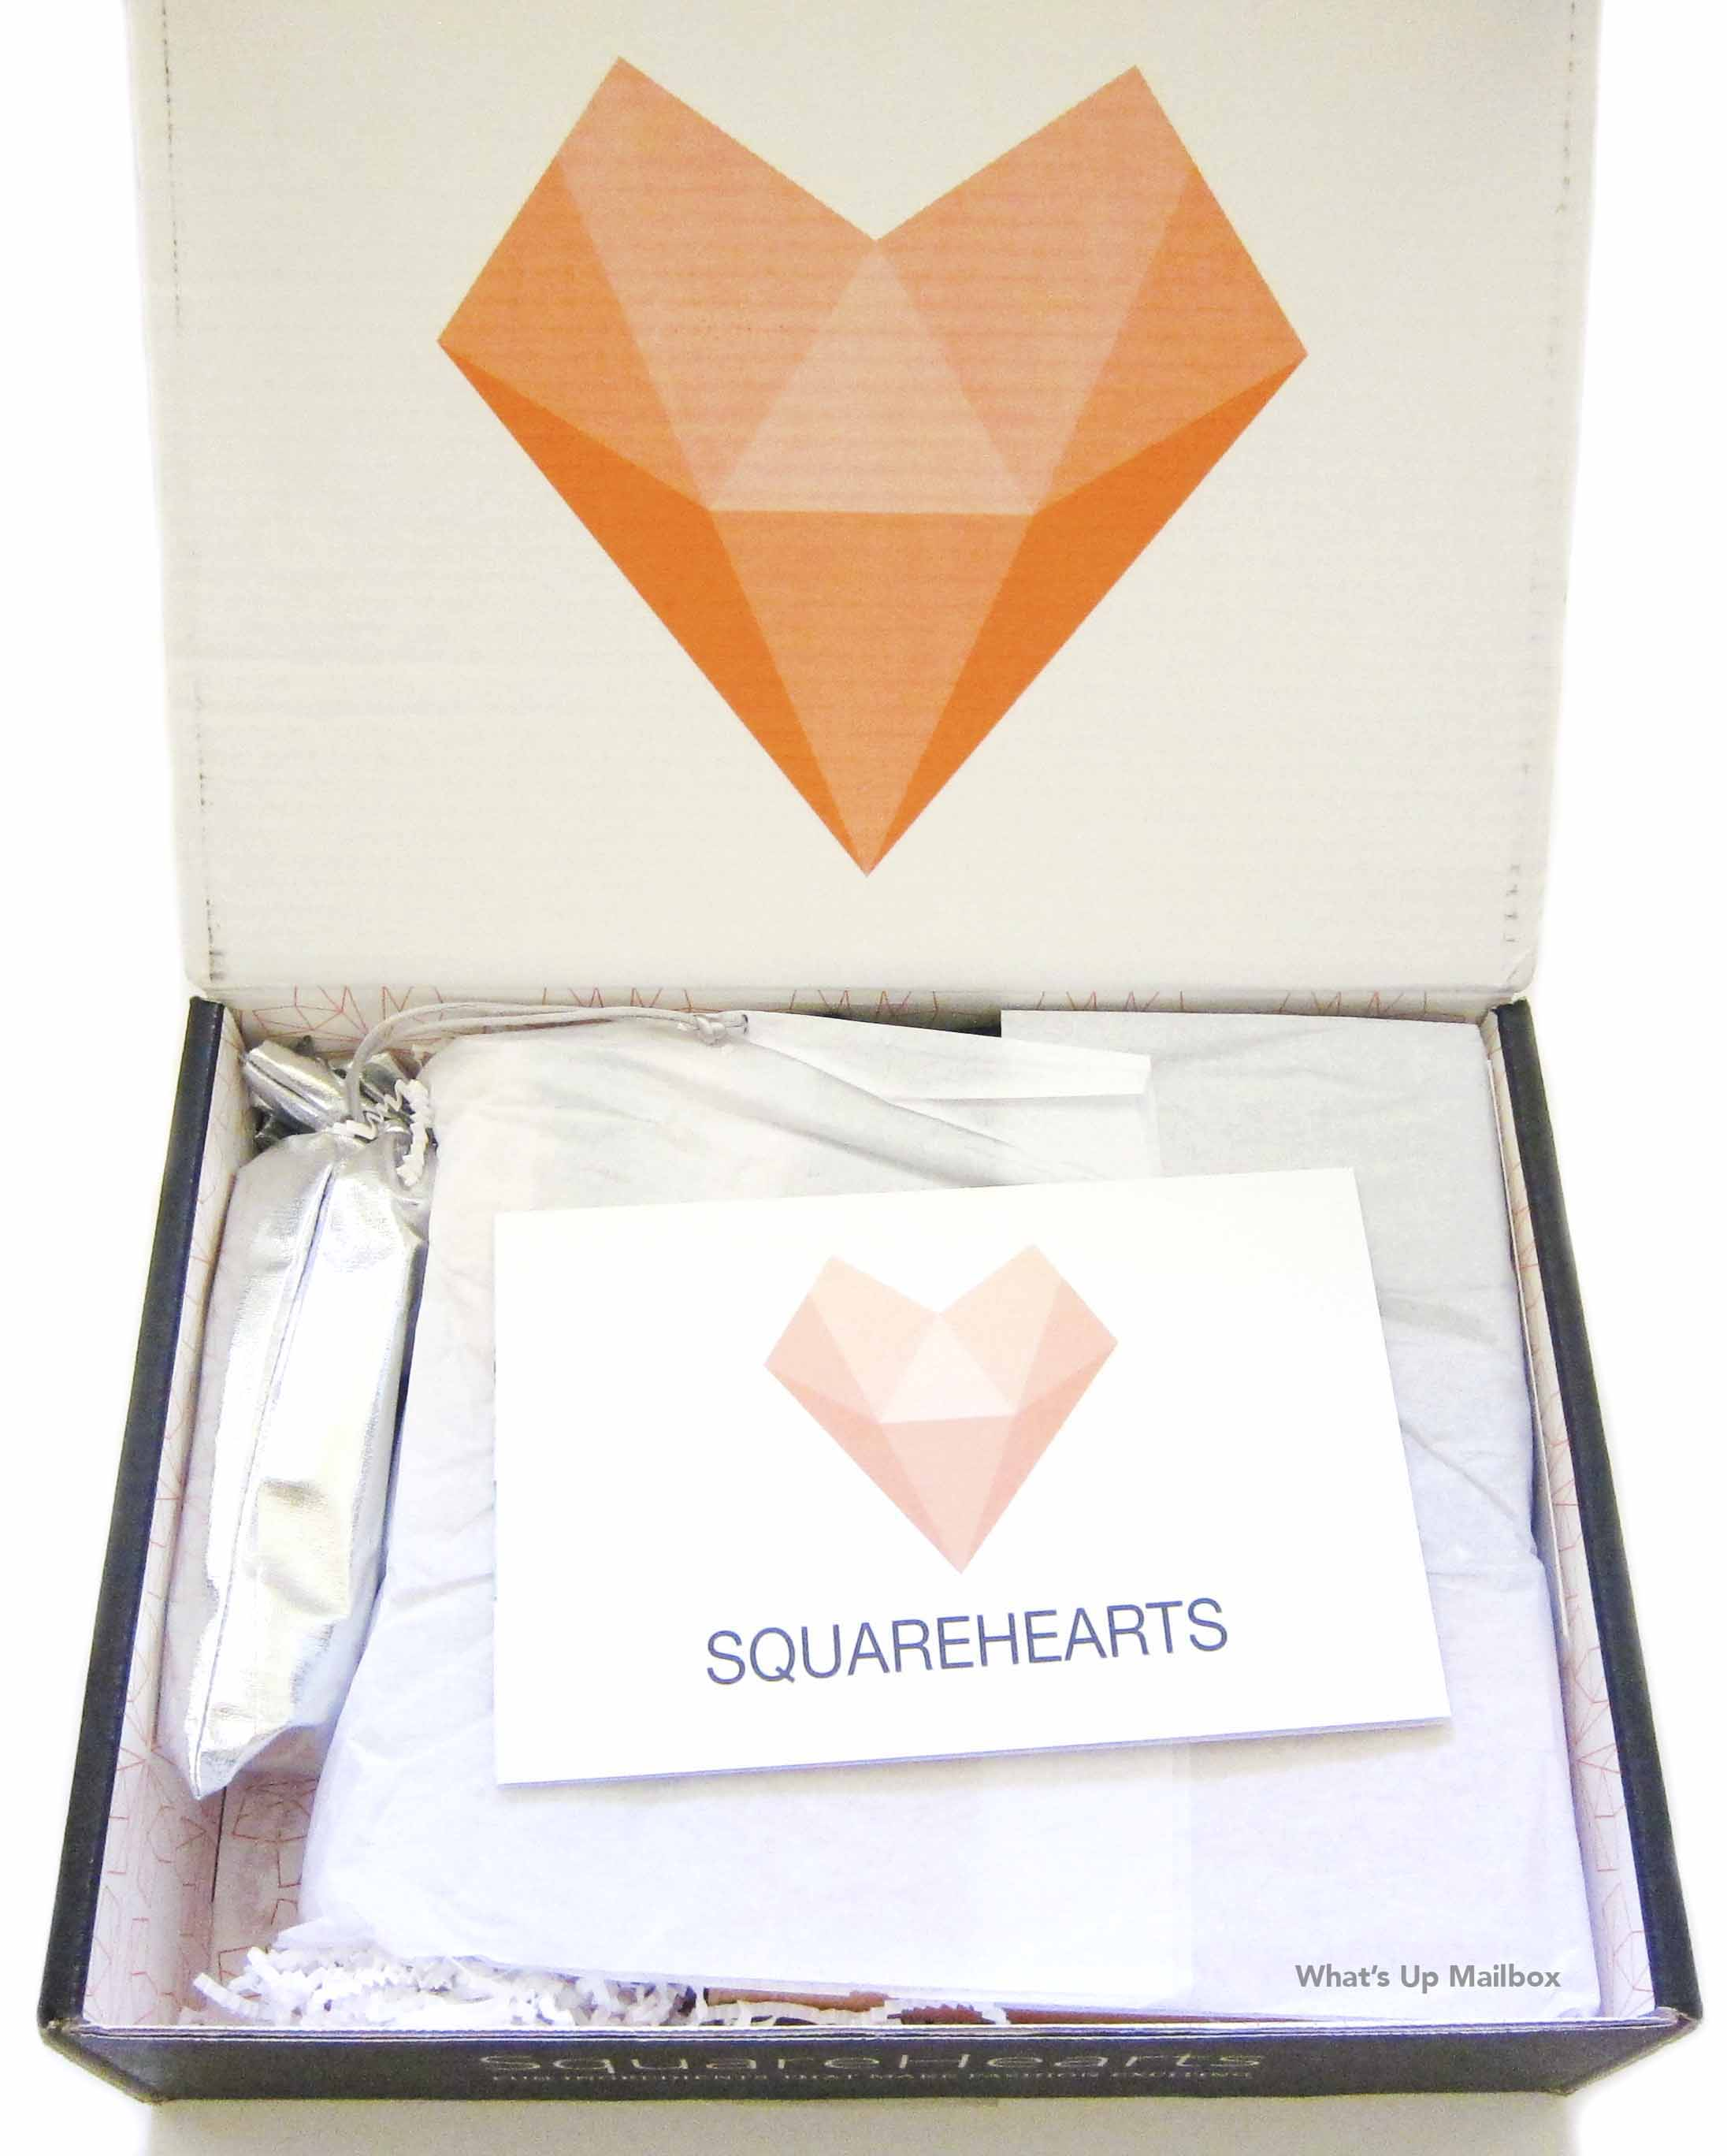 Square Hearts June 2016 Open Box